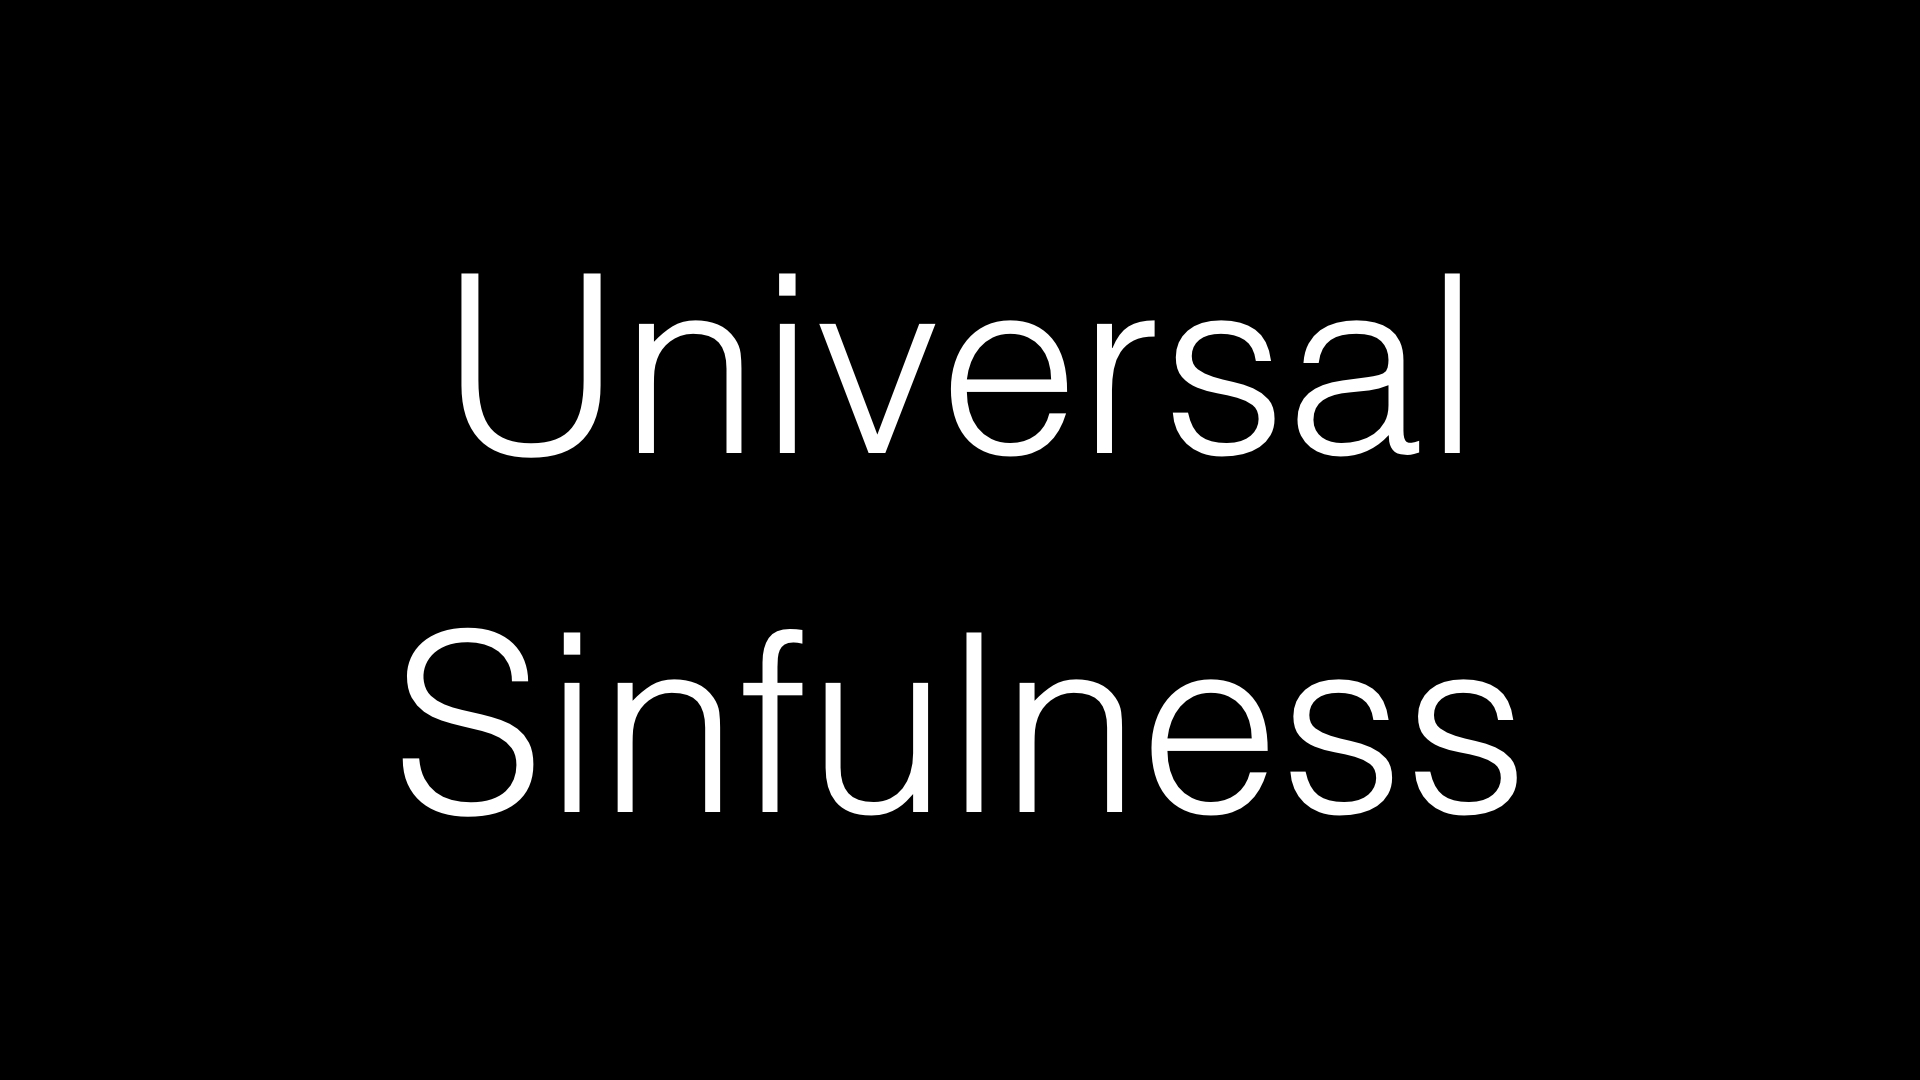 Universal Sinfulness WIDE.001.jpeg